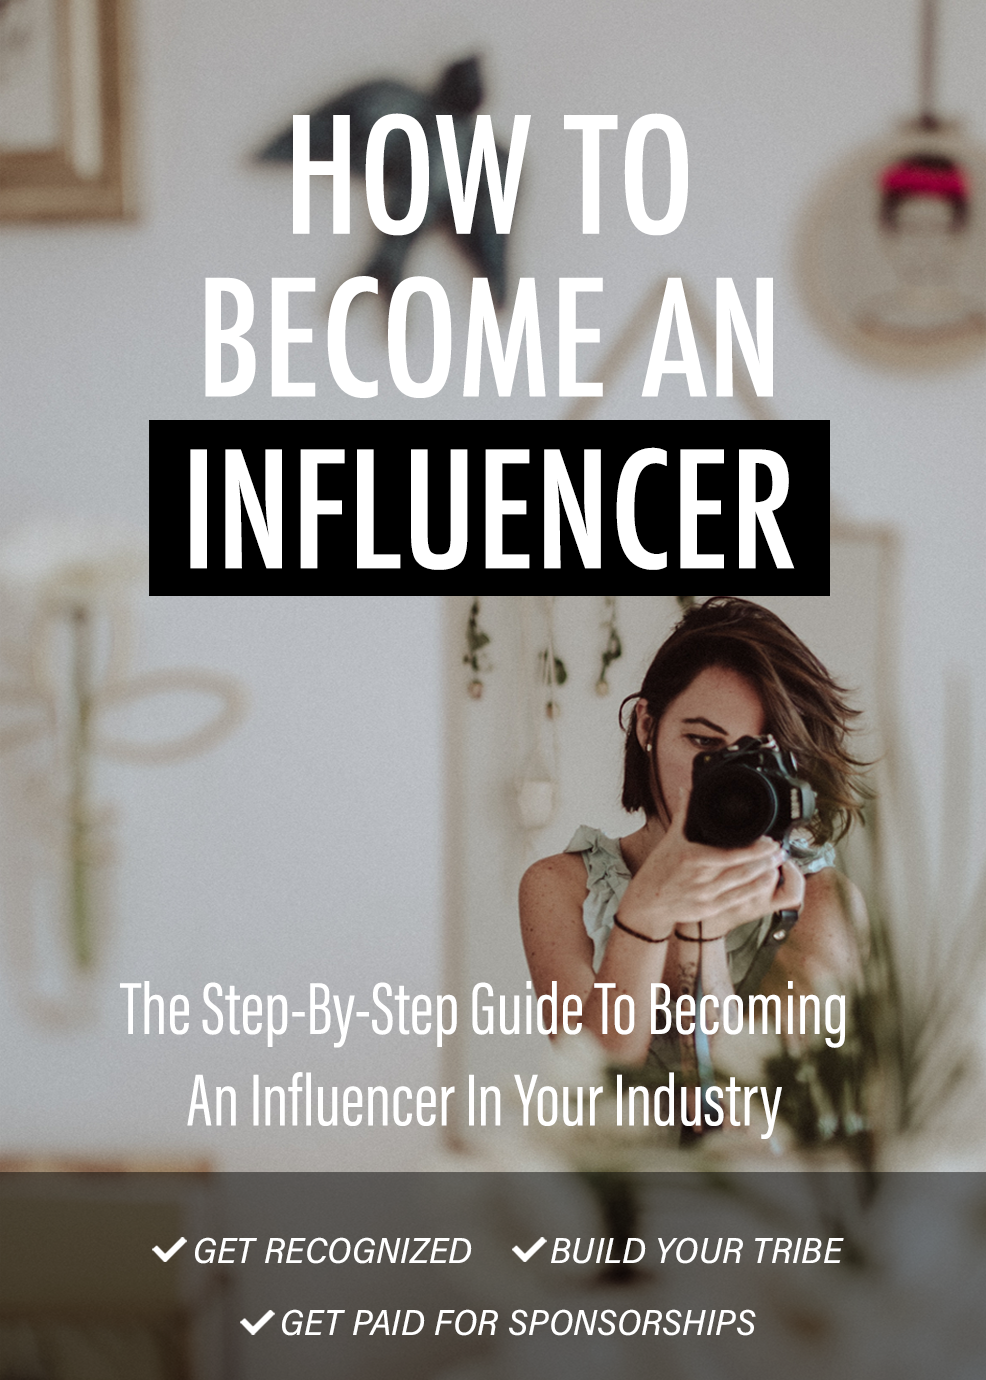 How To Become An Influencer (The Step-By-Step Guide To Becoming An Influencer In Your Industry.) Ebook's Ebook Image